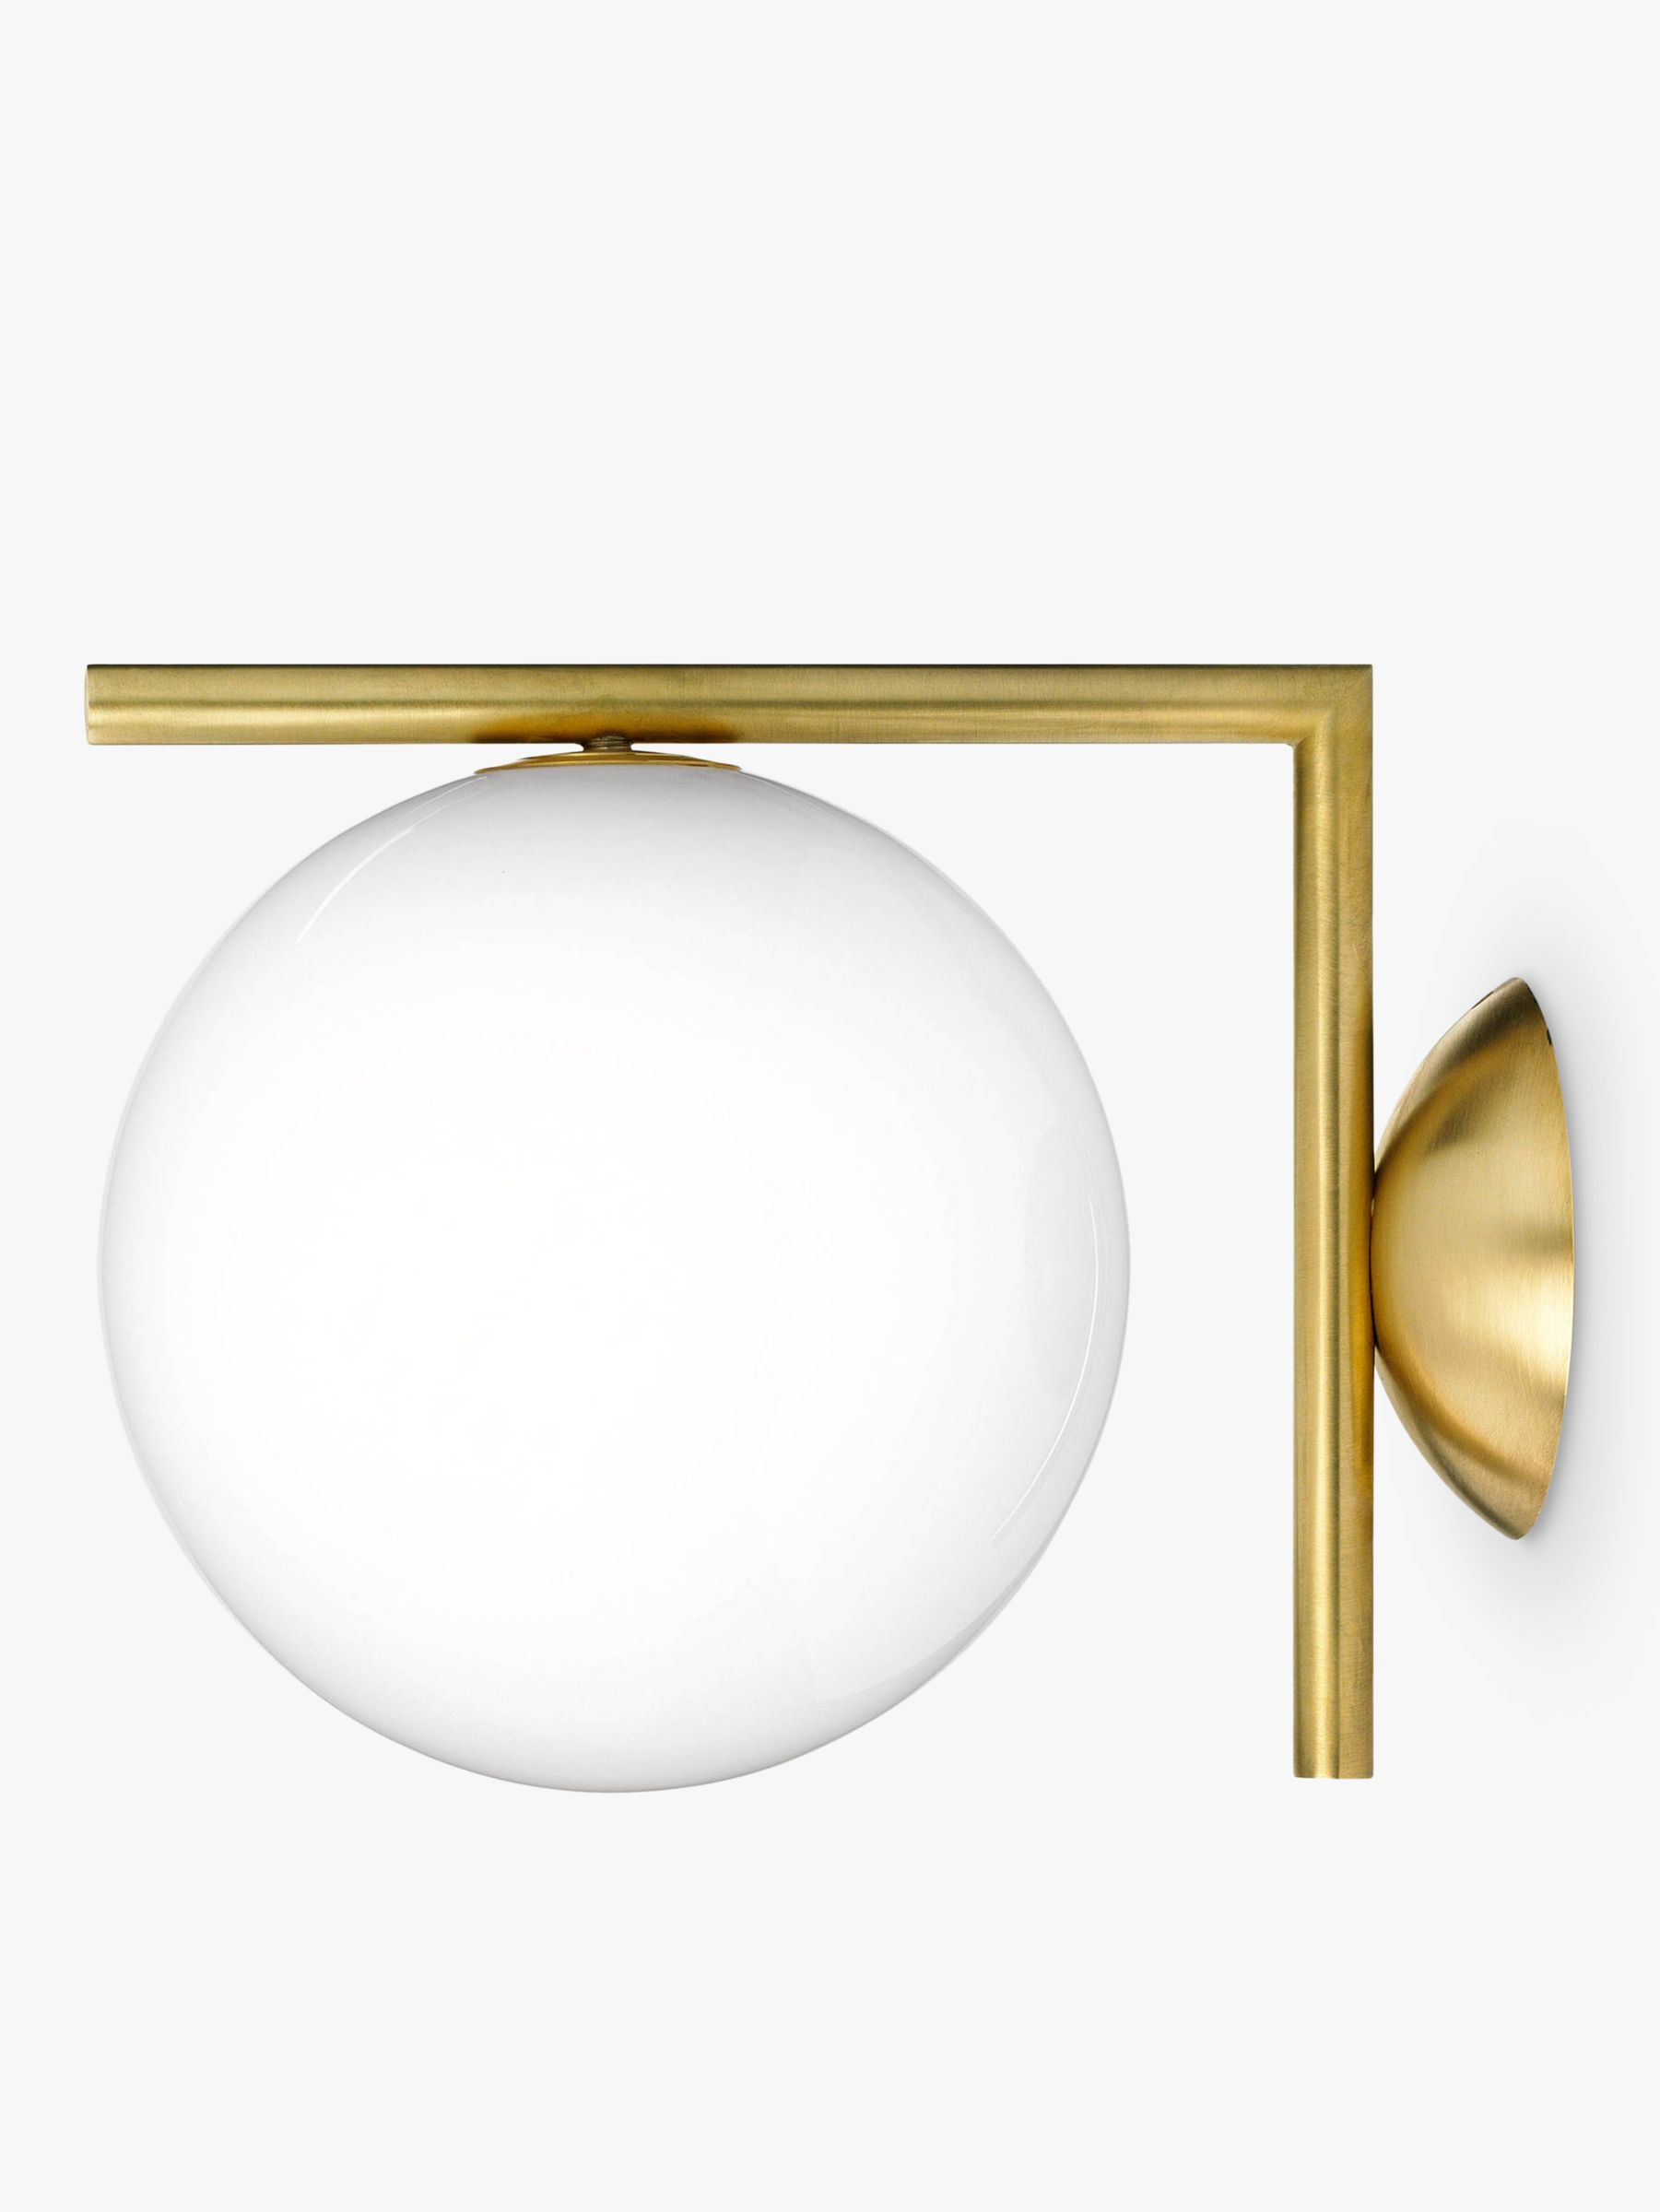 Flos Ic Lights 200 Wall Light Brushed Brass : Buy Flos IC C/W1 Wall Light, 20cm, Brushed Brass John Lewis